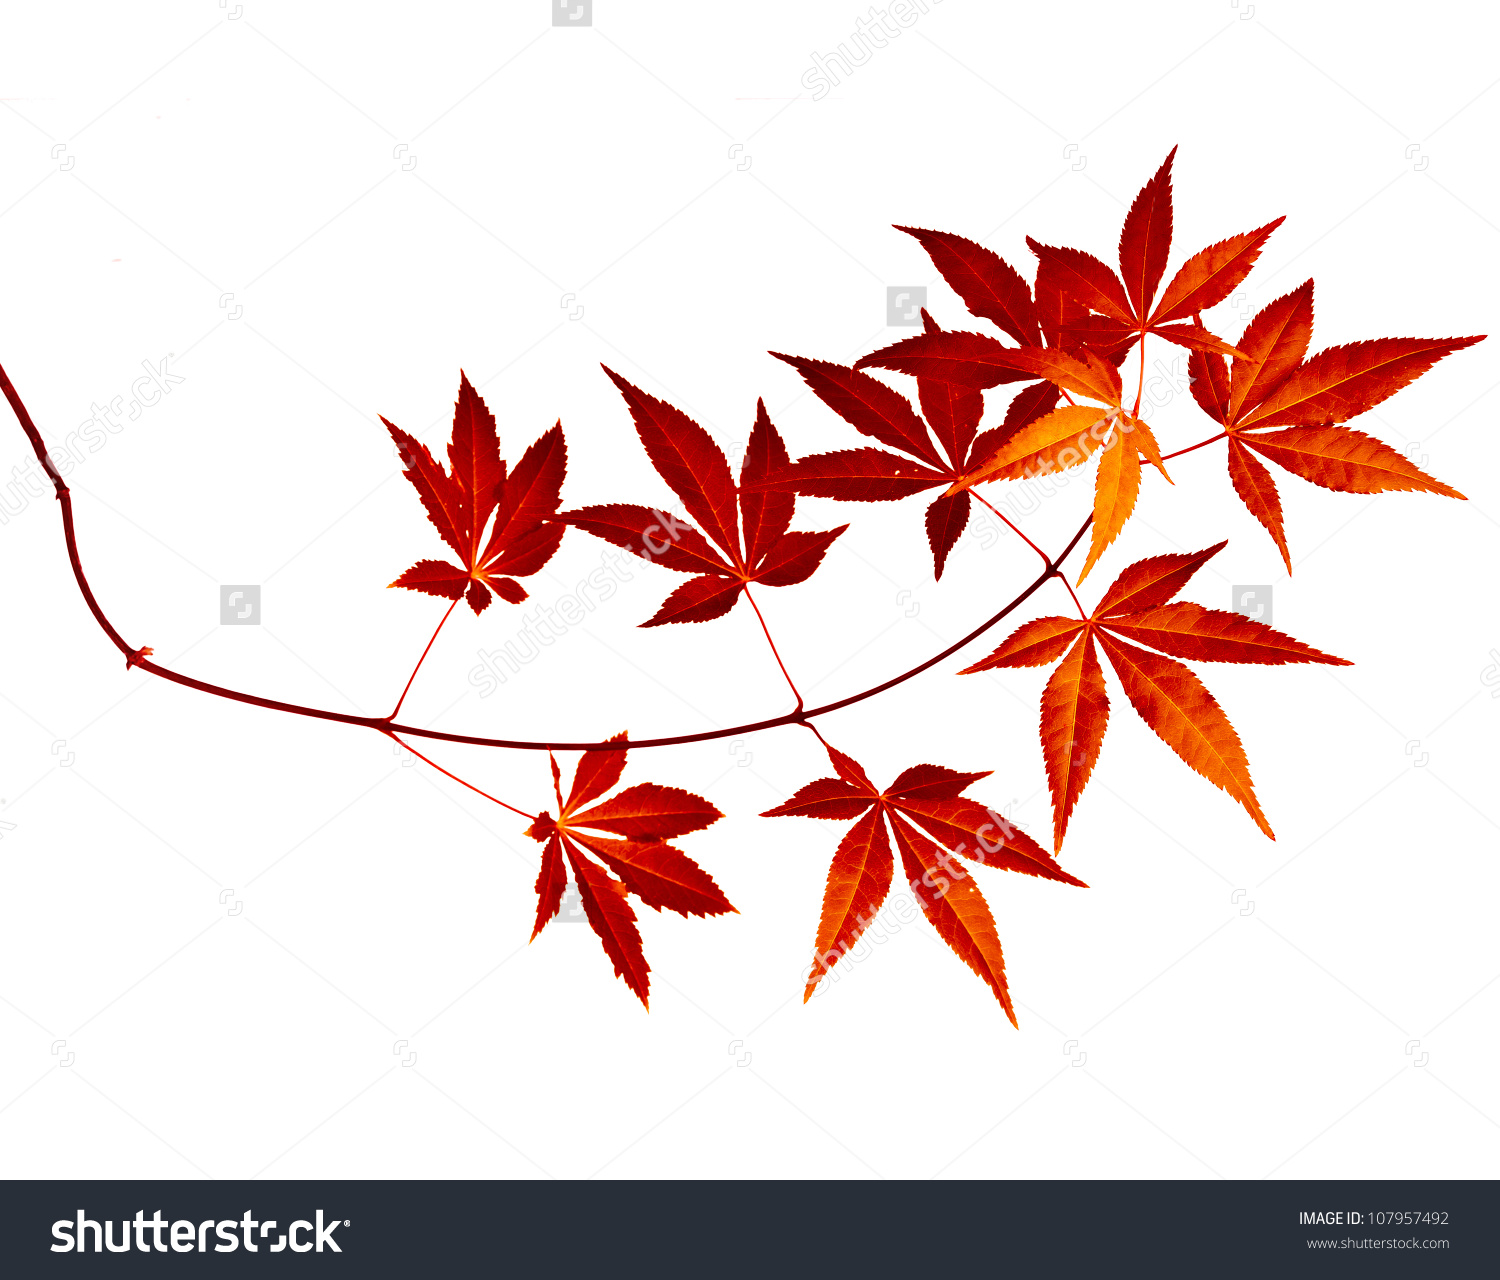 Japanese Red Autumn Maple Tree Leaves Stock Photo 107957492.